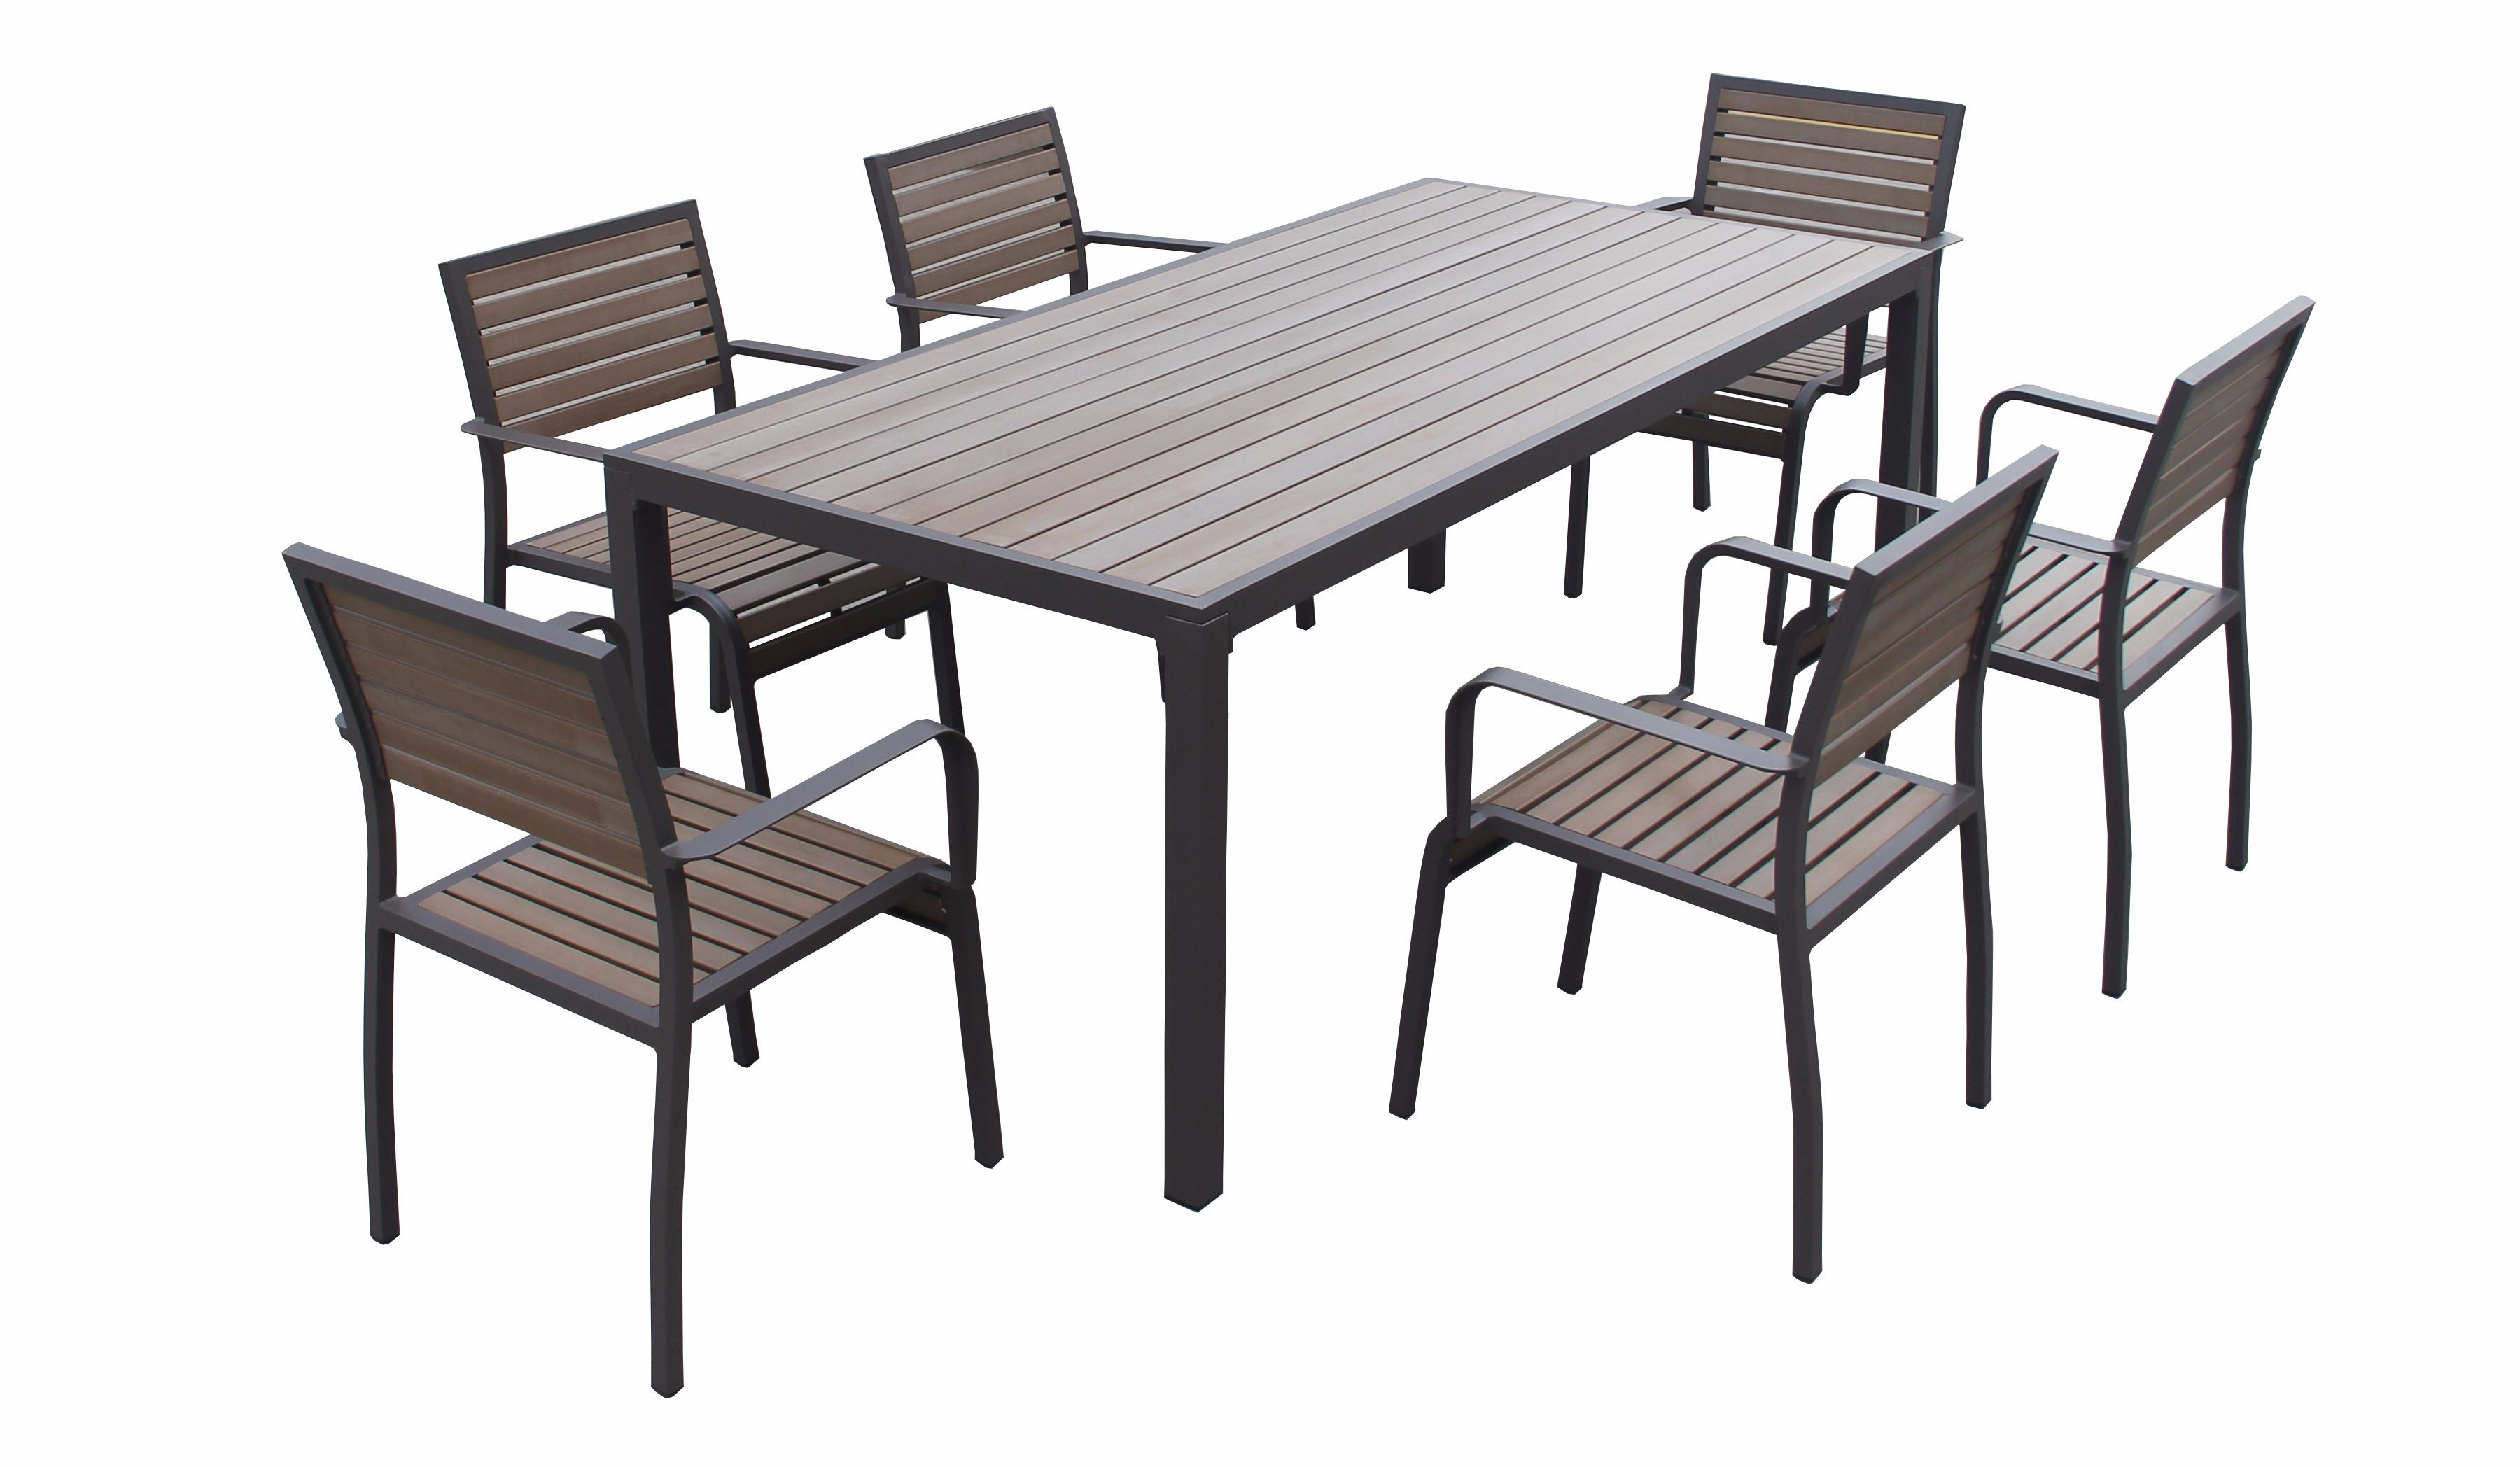 Fine Hot Item General Used Outdoor Garden Patio Plastic Wood Dining Set Polywood Outdoor Leisure Furniture Outdoor Dining Set Pdpeps Interior Chair Design Pdpepsorg